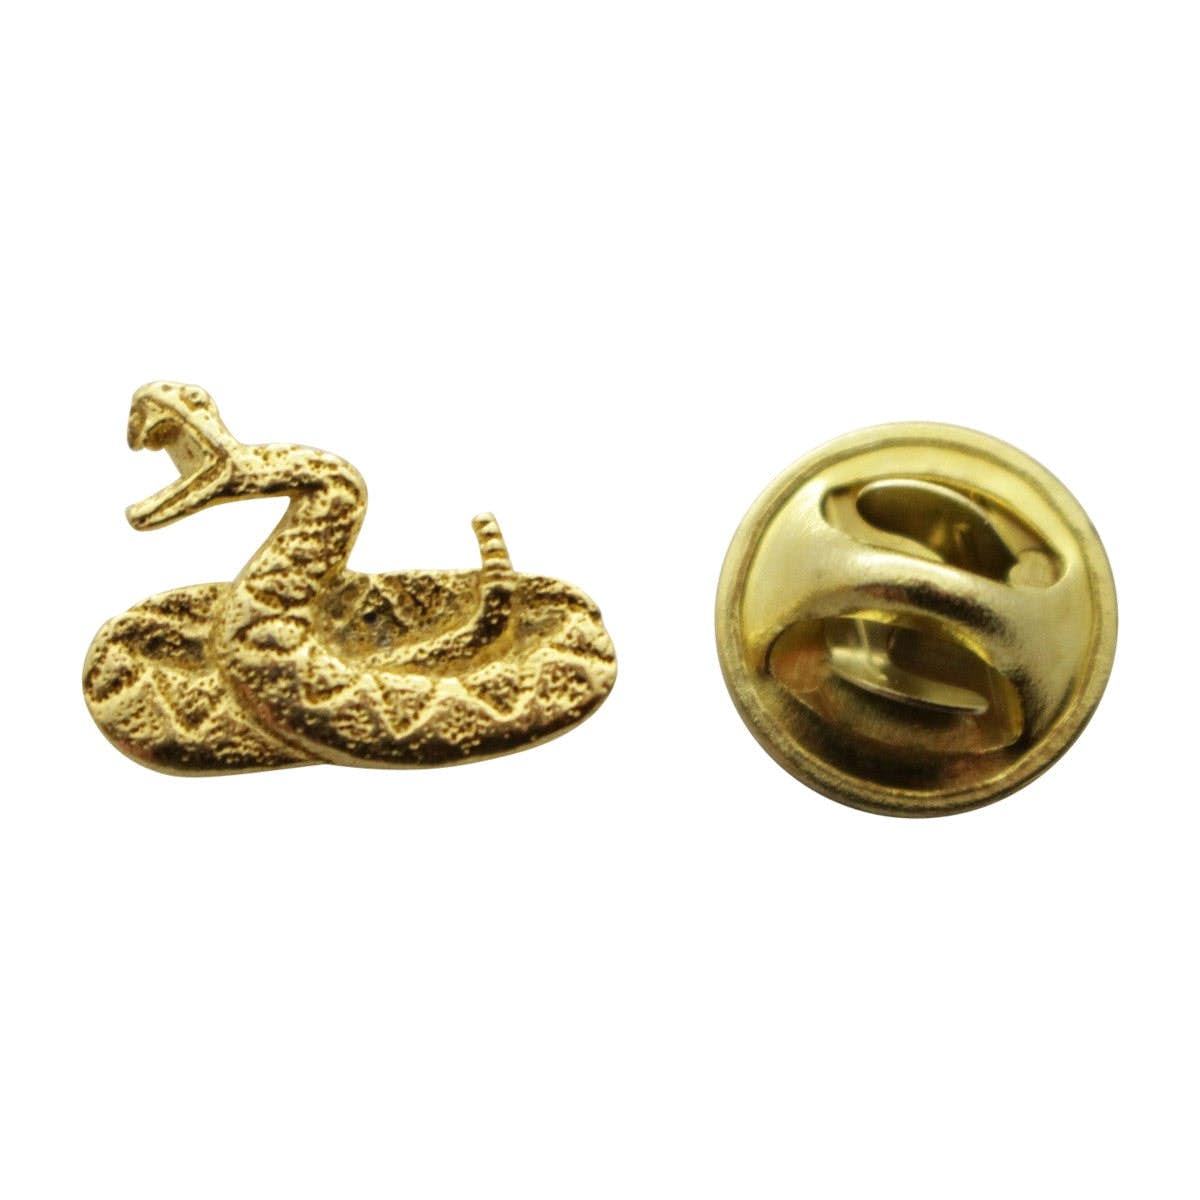 Rattle Snake Pewter Pin